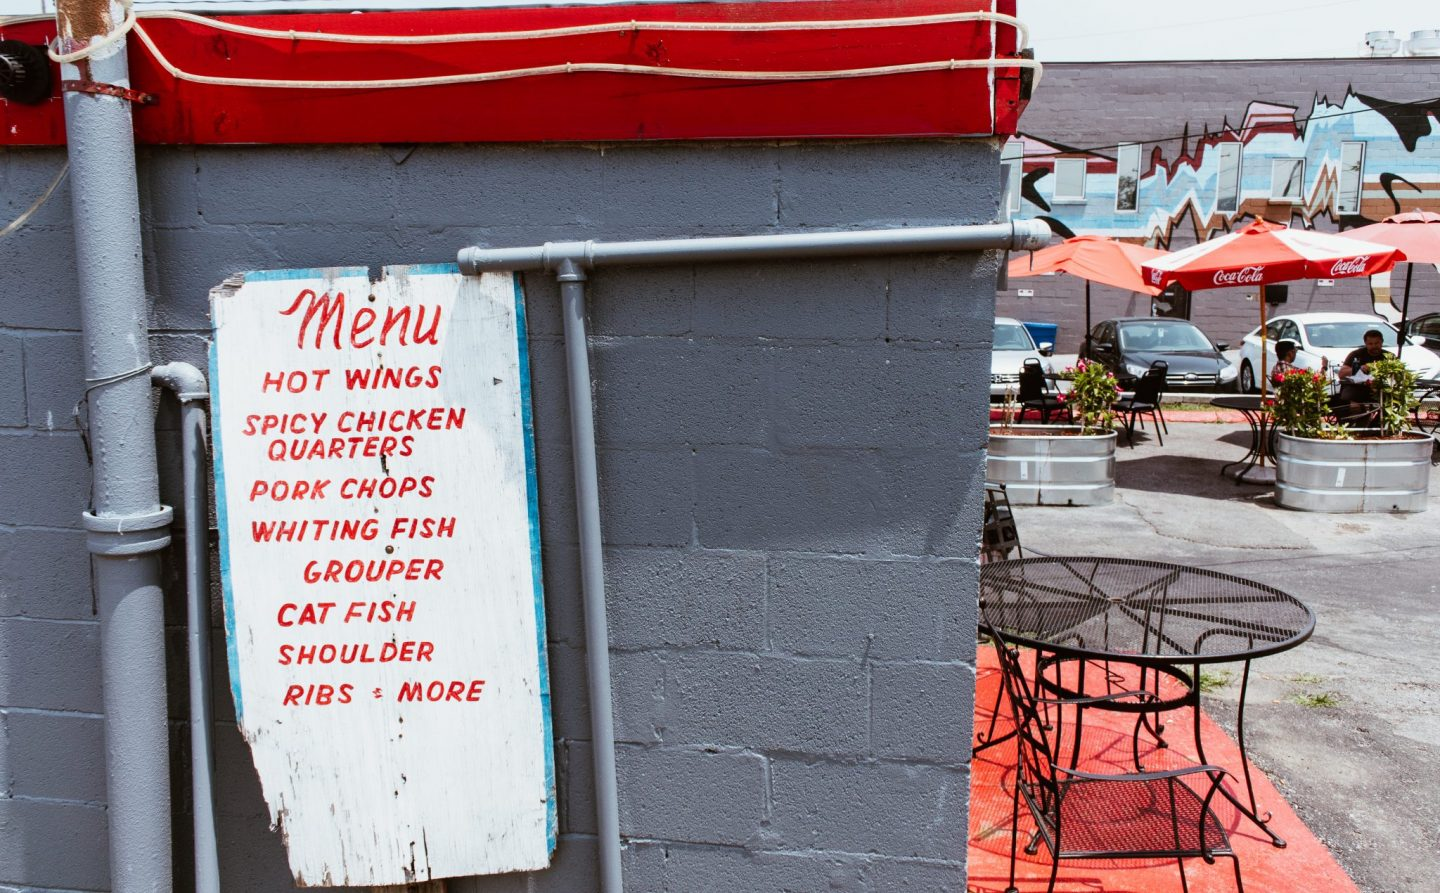 bolton's nashville outdoor menu